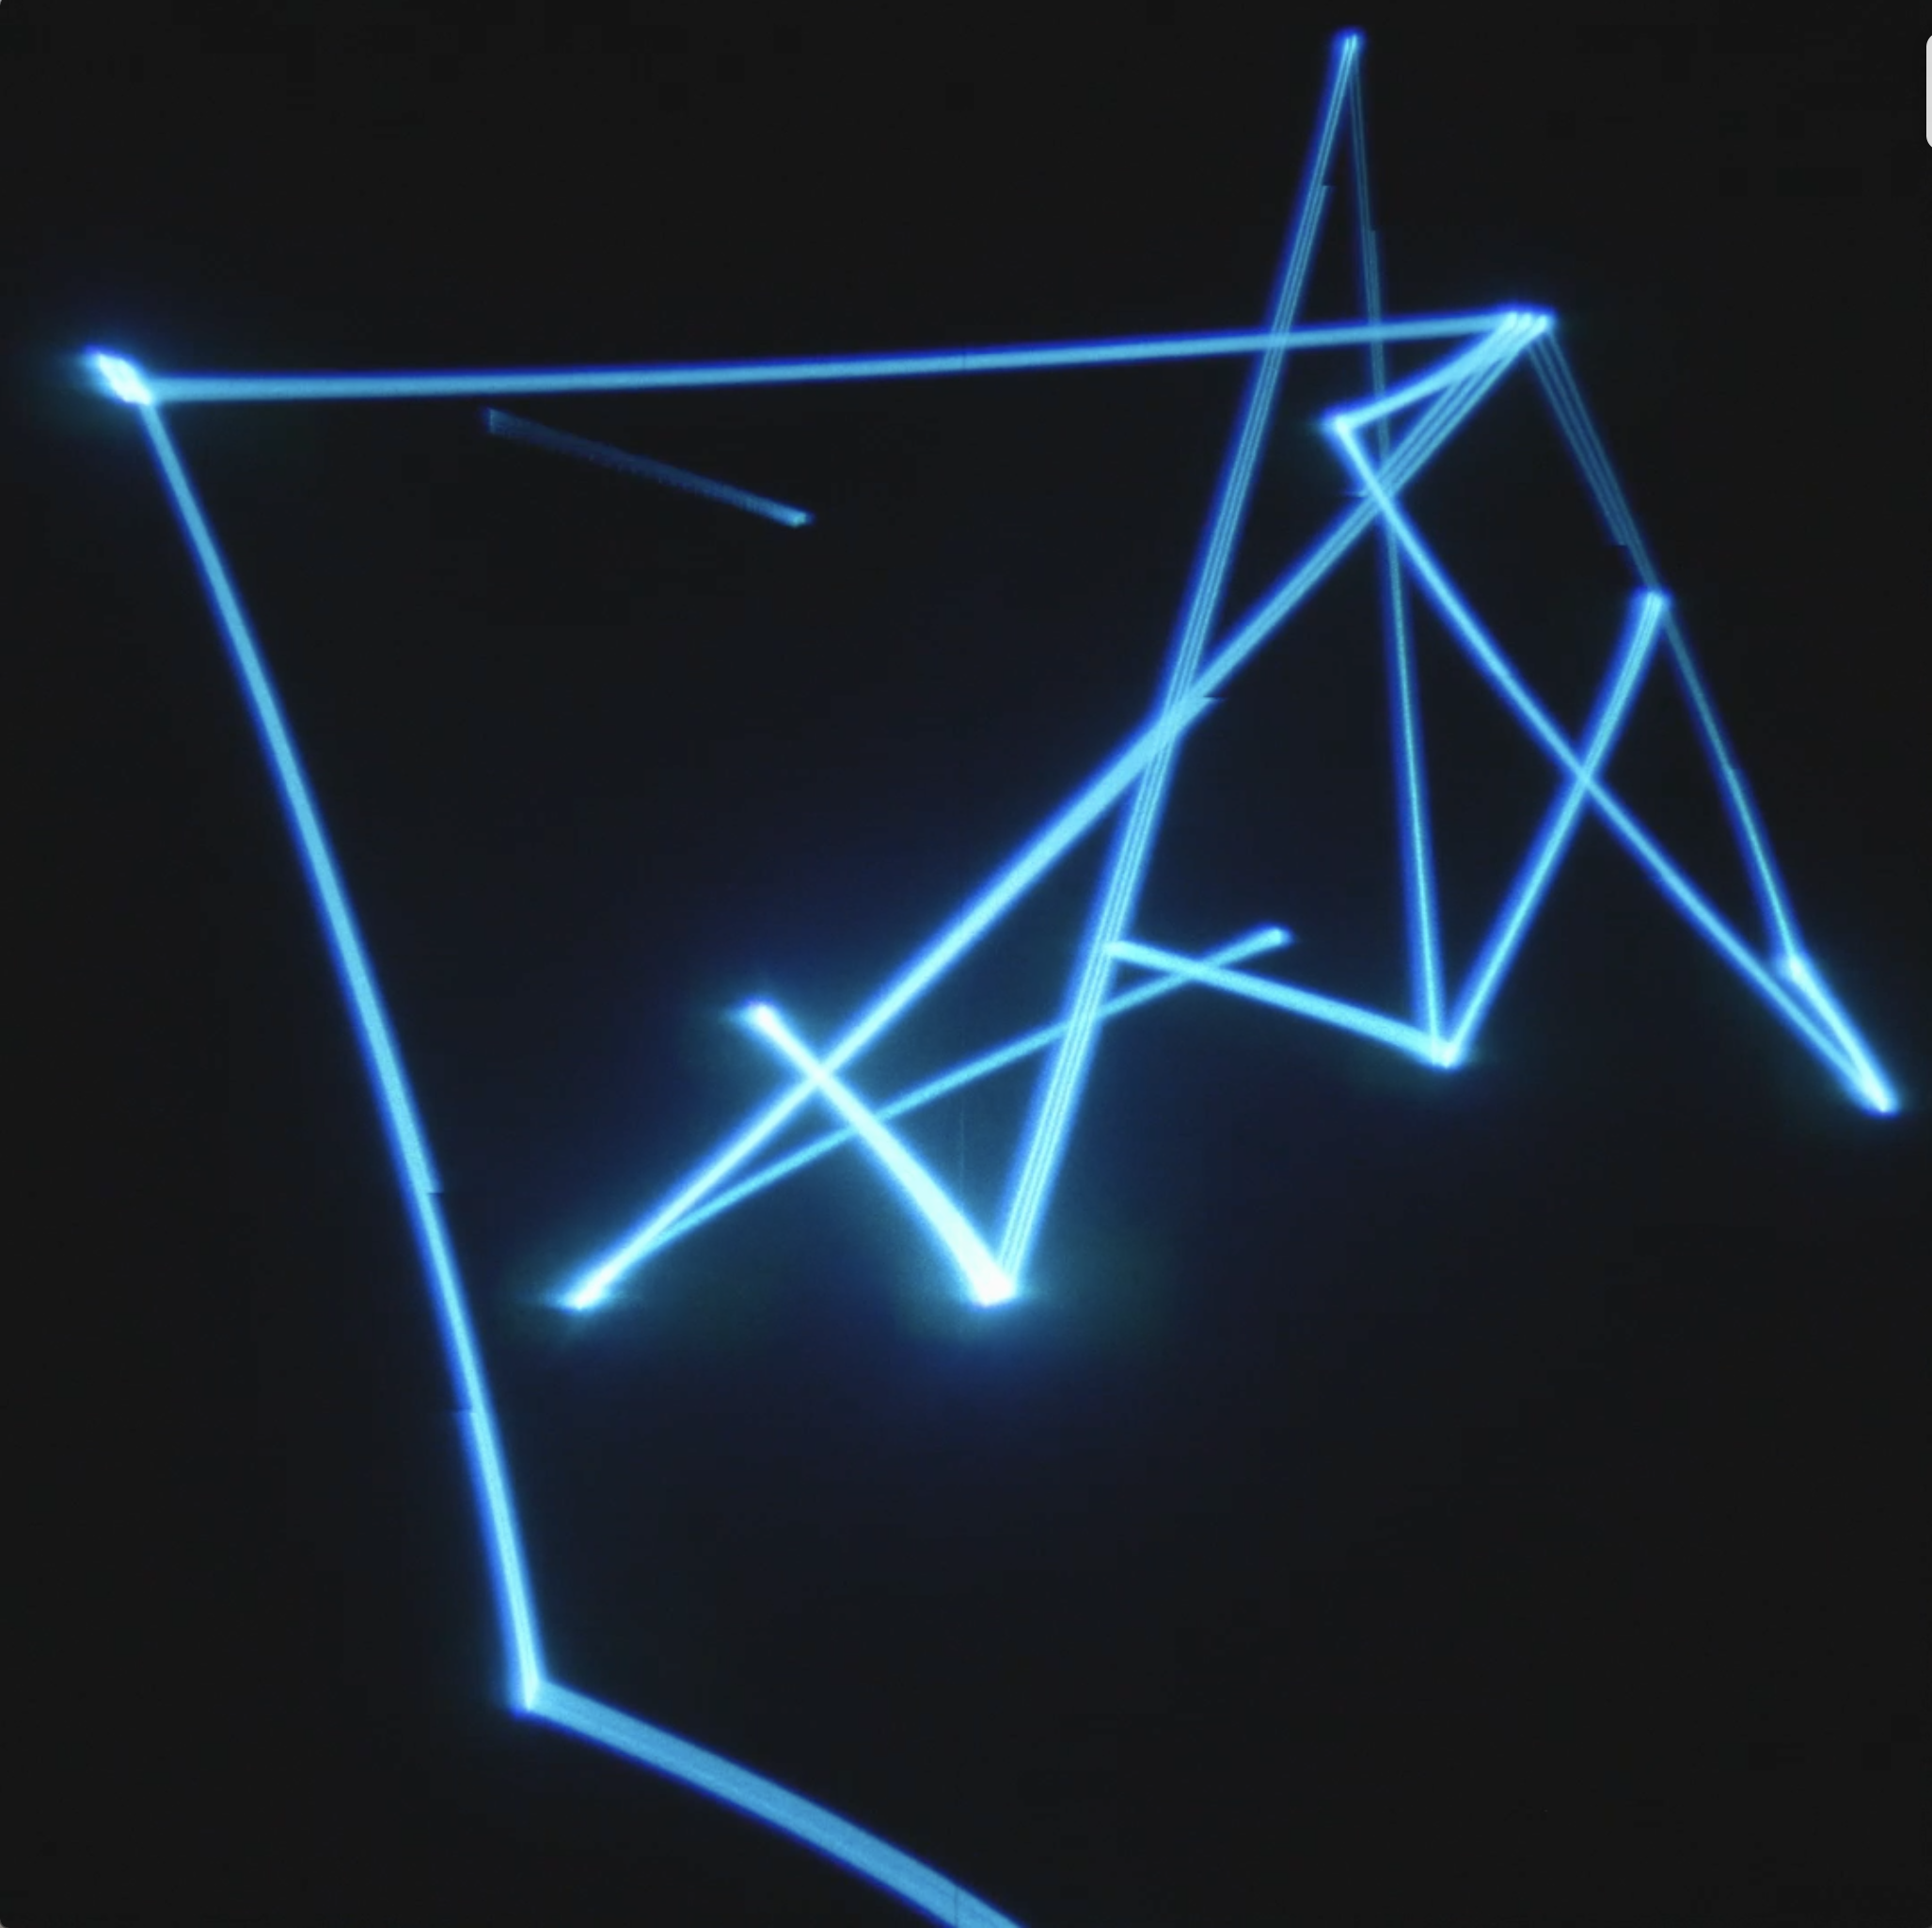 Study For 'The Summoning' (2020) 300cm (h) x 245cm (w) x 245cm (d) Aluminium Frame, Back projection screen, Black fabric,  BB4 laser projector, optical lens and bracket, laser interface, computer, cables Custom software, Leap Motion sensor, plinth.